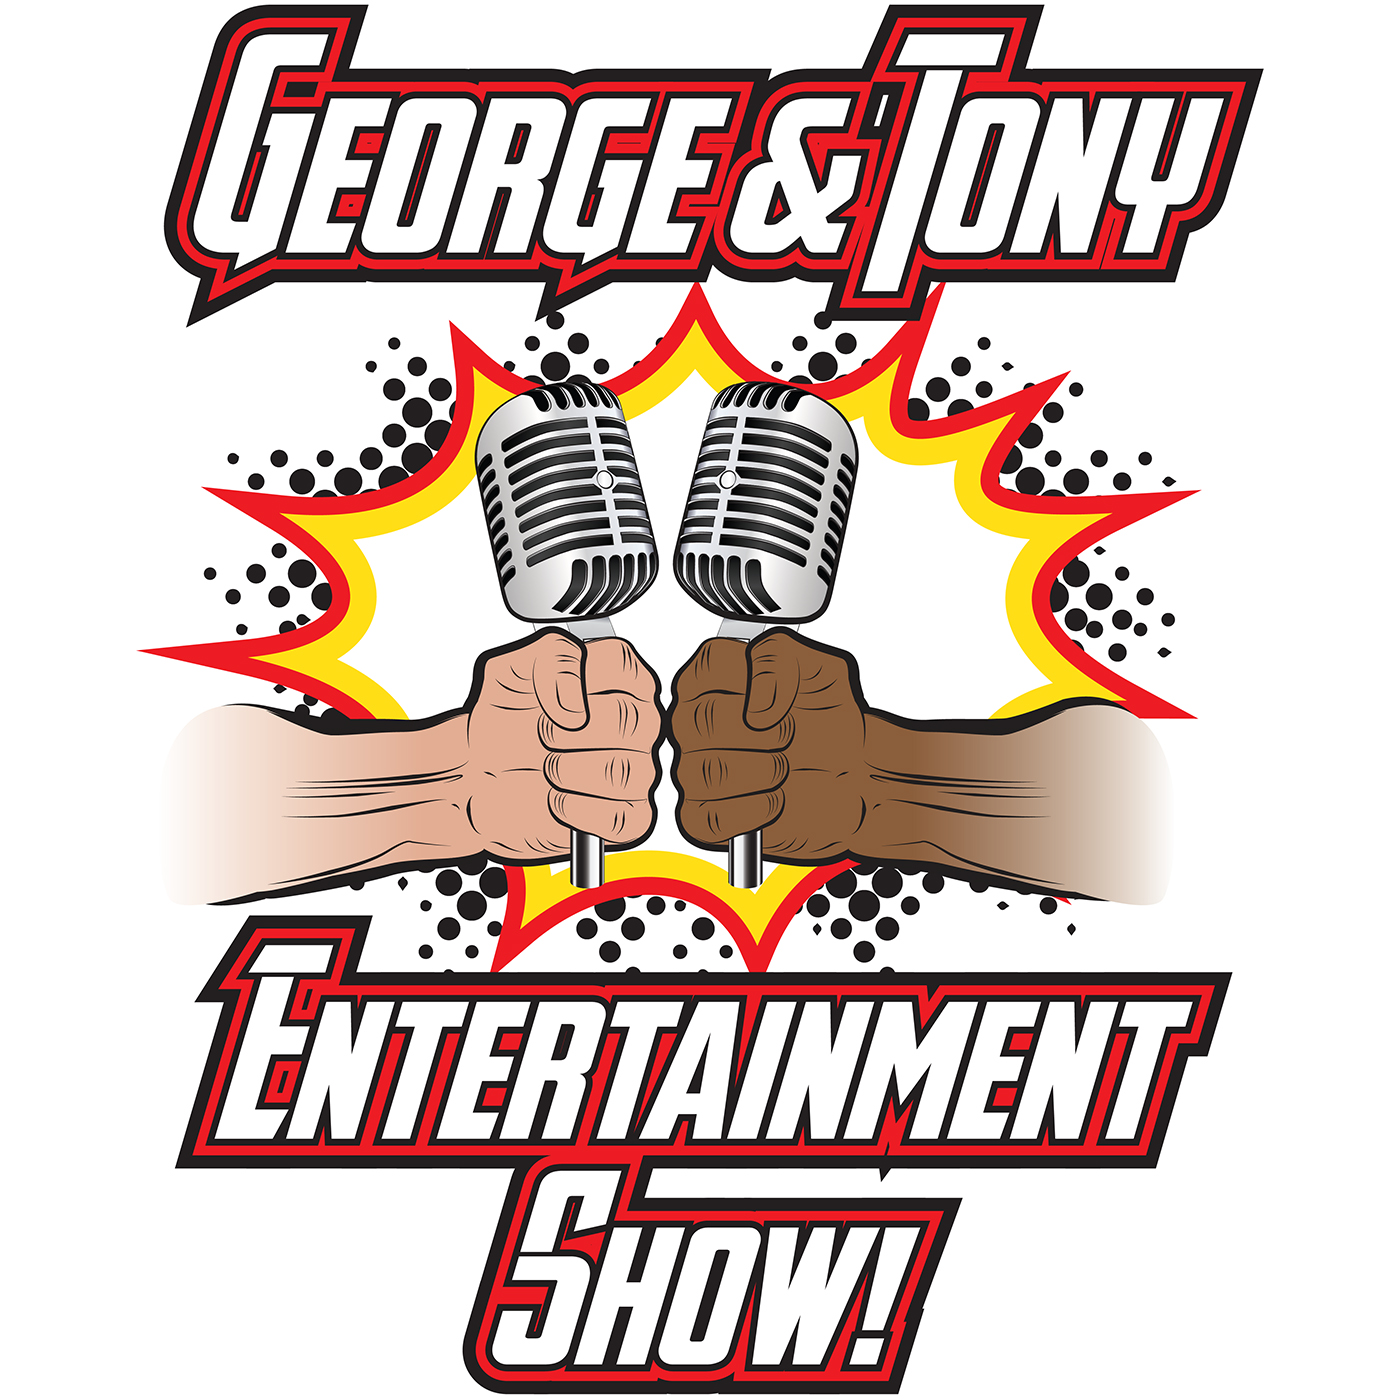 George and Tony Entertainment Show #116